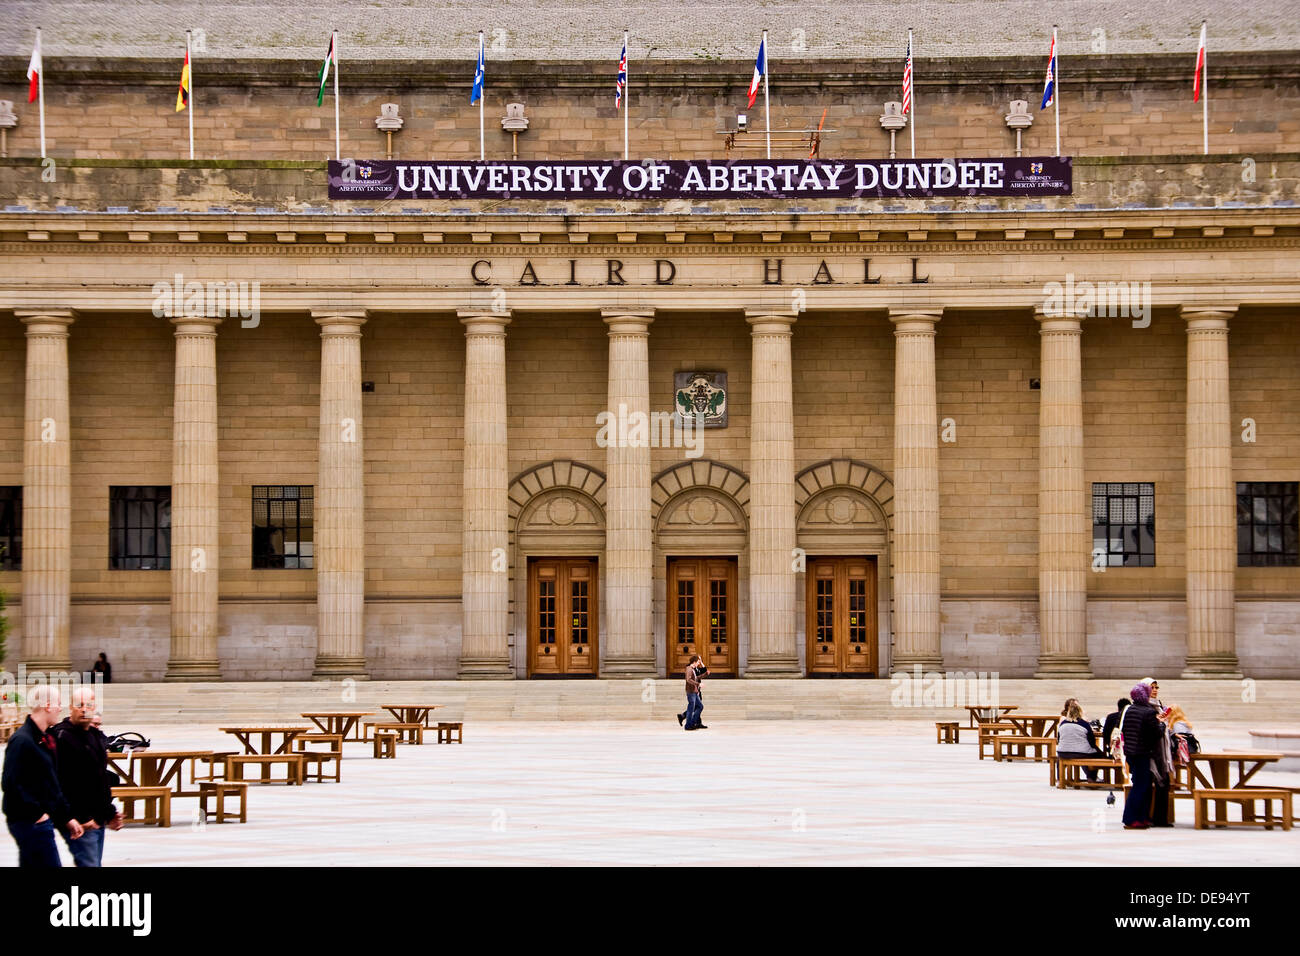 View of the Caird Hall Doric Columns and main entrance with several people relaxing around the City Square in Dundee, Stock Photo